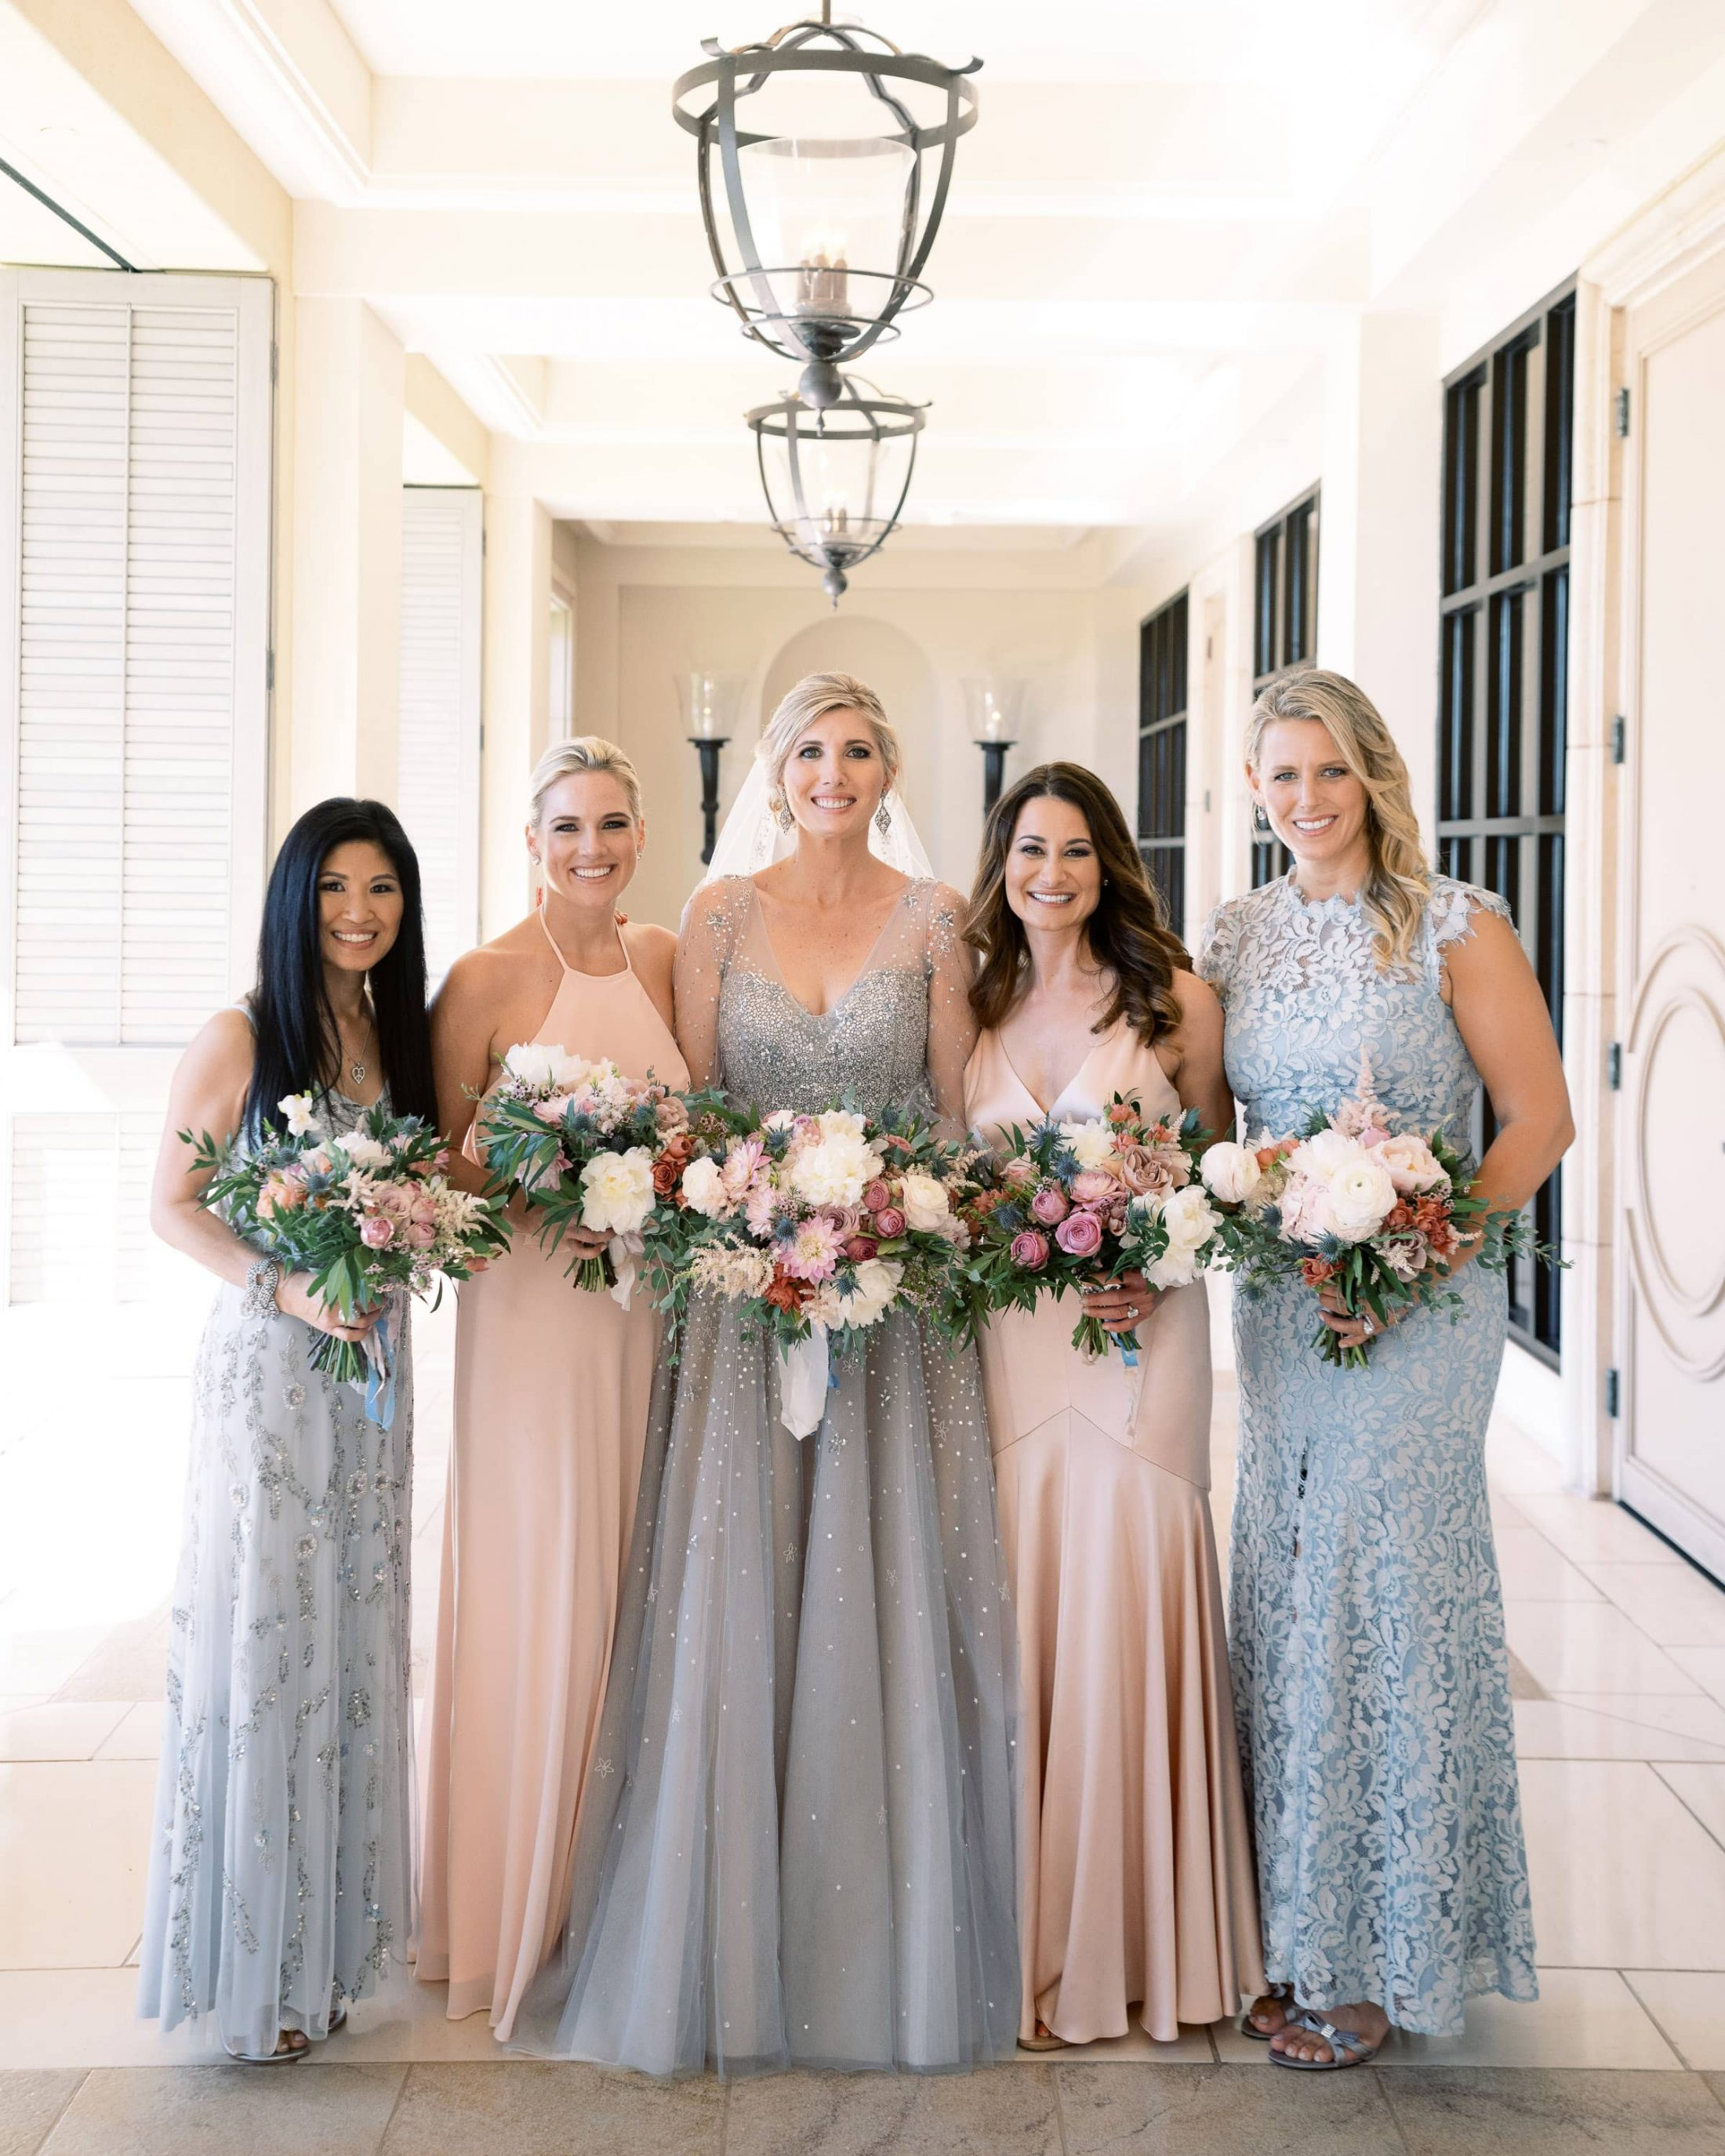 Bride and bridesmaids in light pink and blue dresses at Maui wedding at Four Seasons Resort Maui in Wailea, Hawaii | Photo by James x Schulze